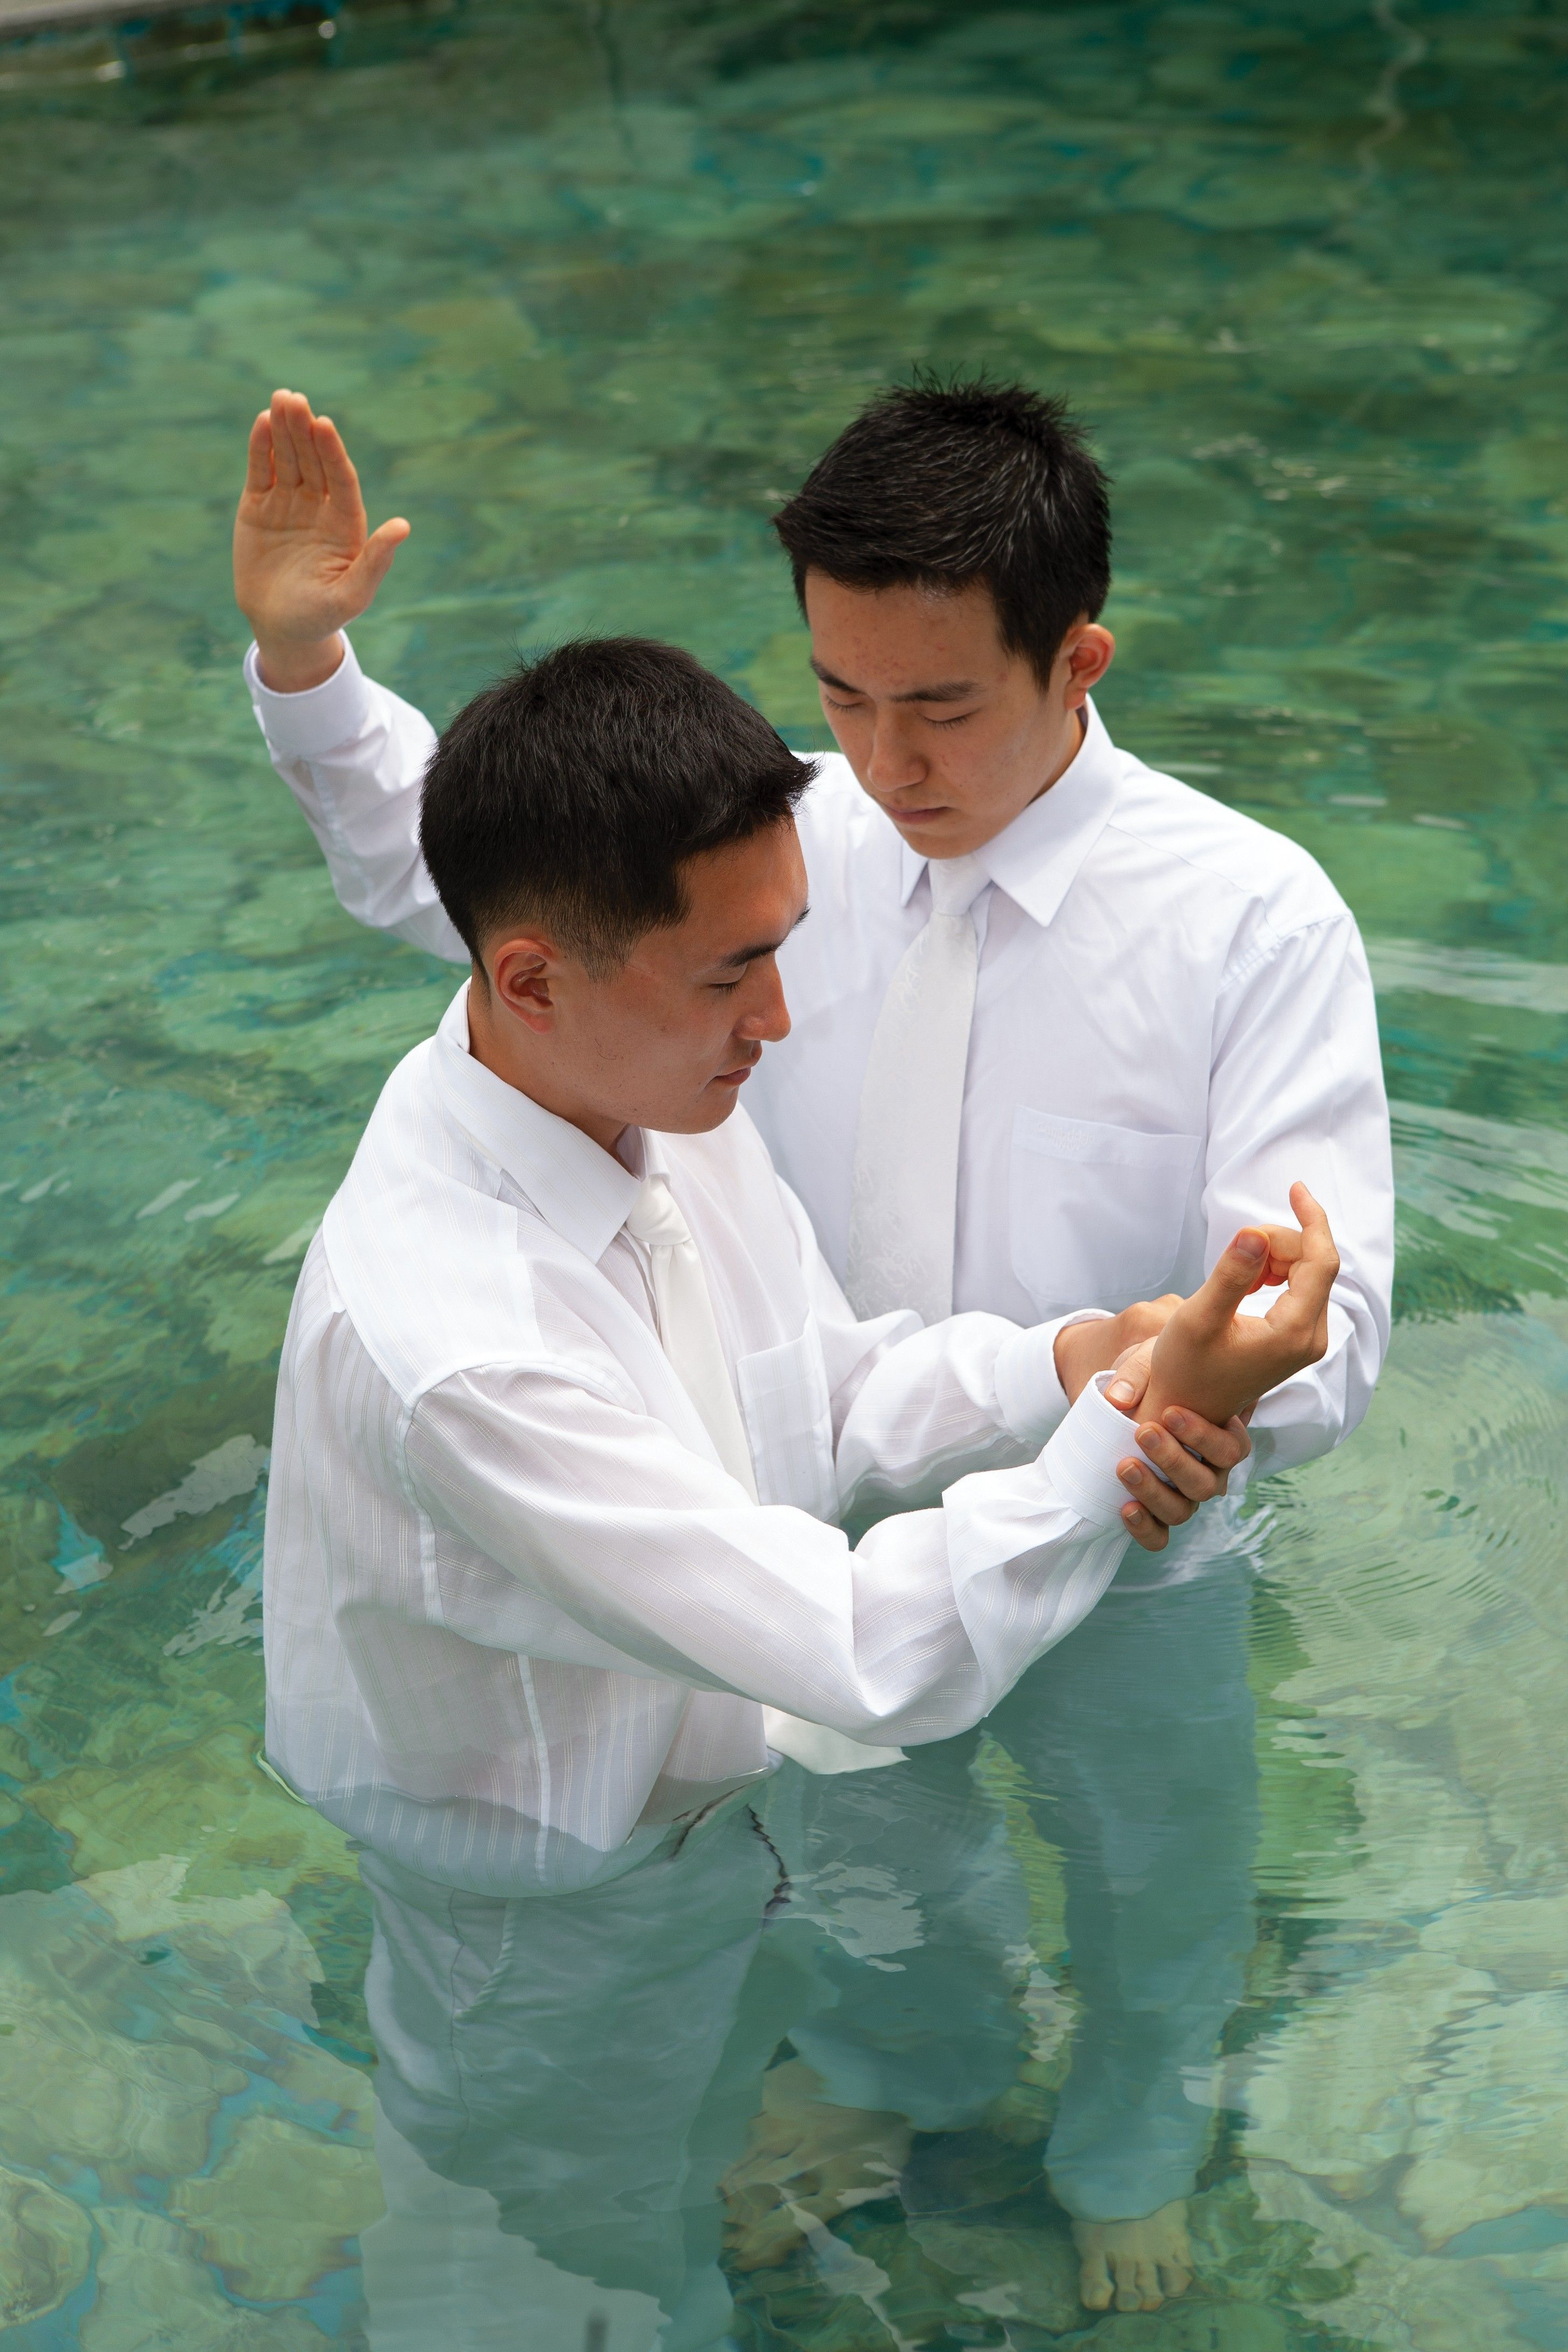 A young man in white clothing being baptized by another young man in an outdoor pool of clean water with rocks seen at the bottom.